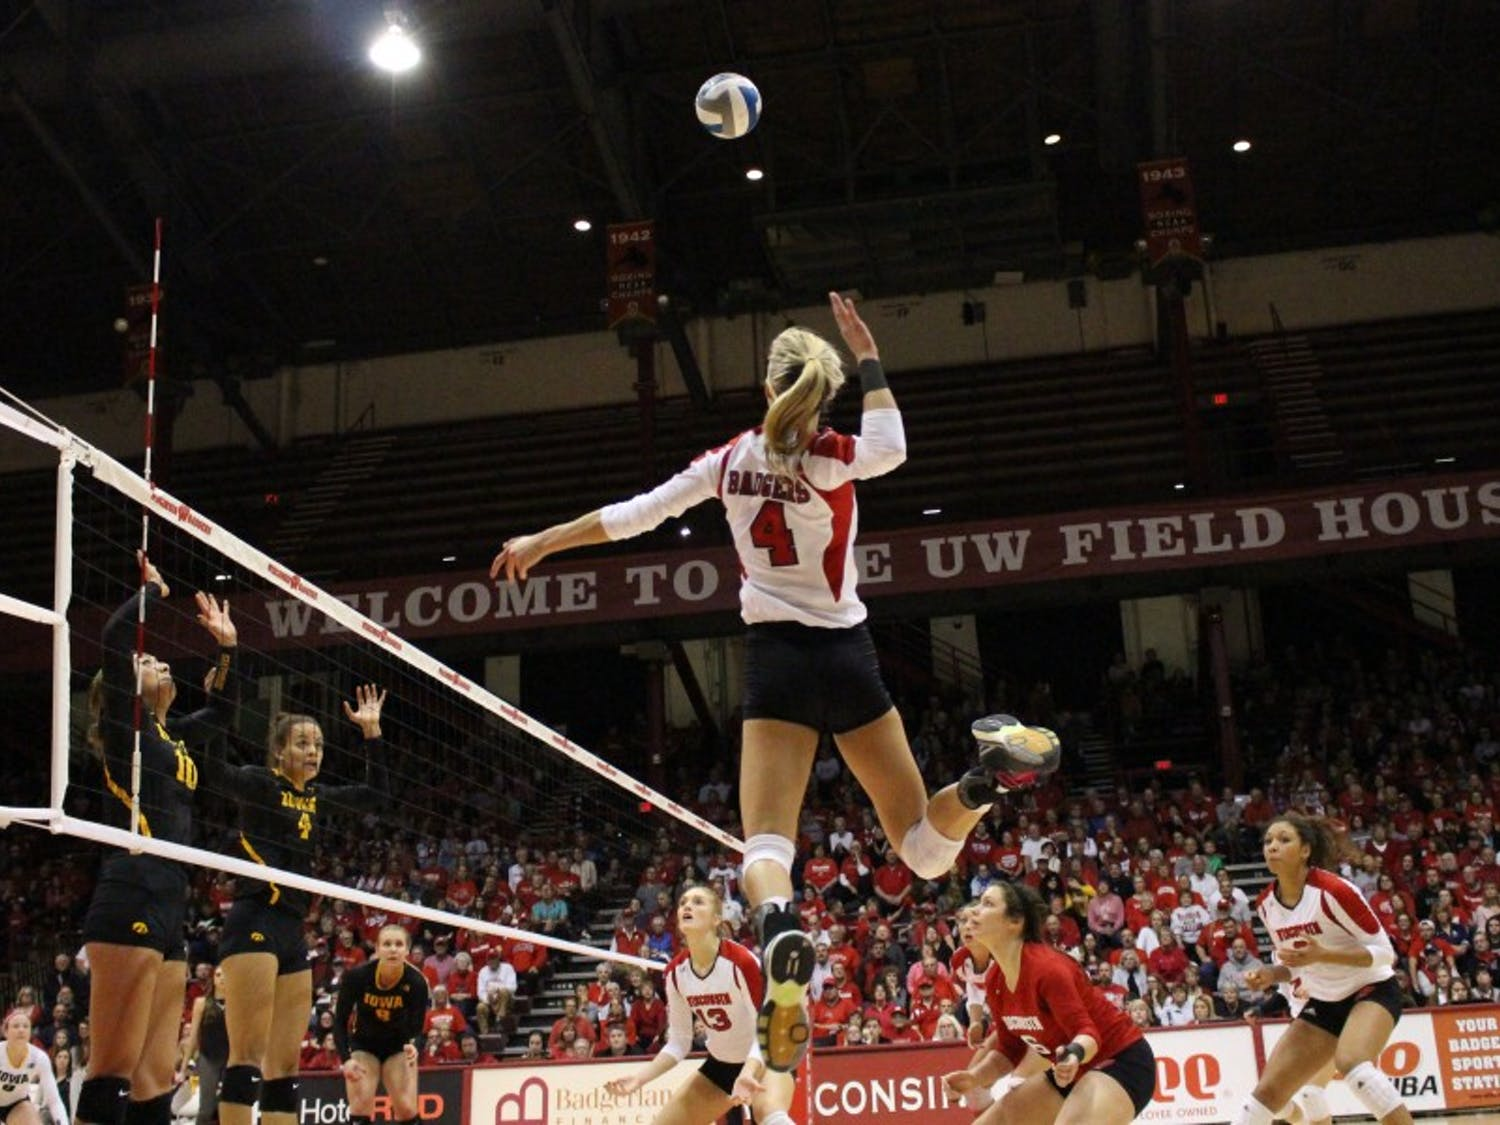 Kelli Bates knows that the Badgers can't look past Maryland, despite the big matchup with Minnesota this weekend.